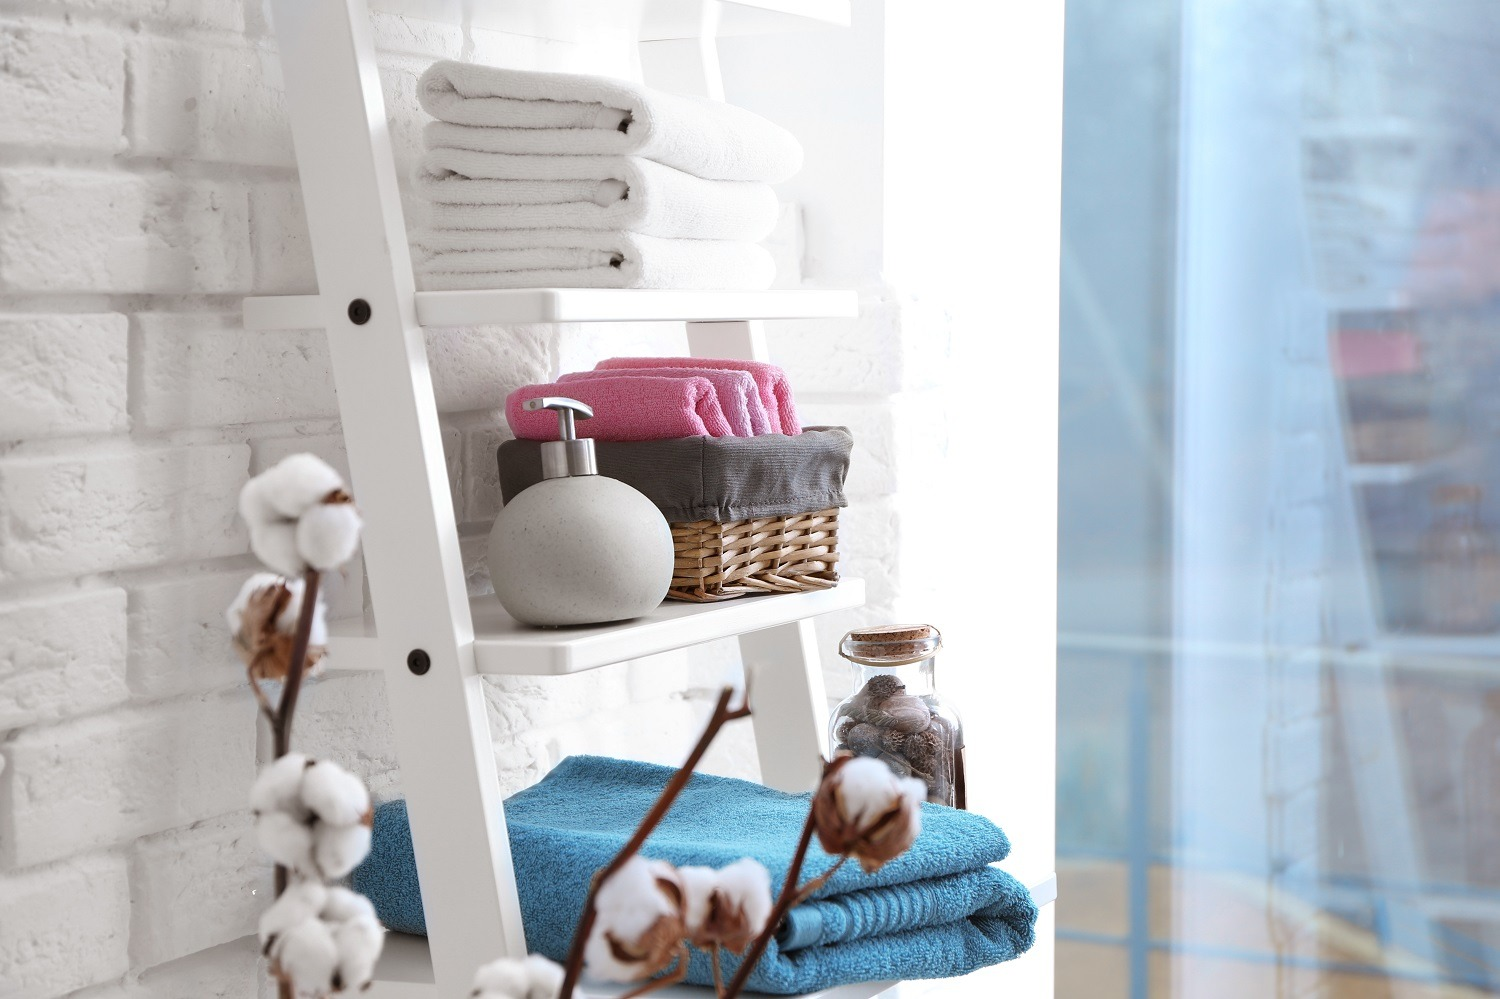 Clean towels with soap dispenser on shelves in bathroom